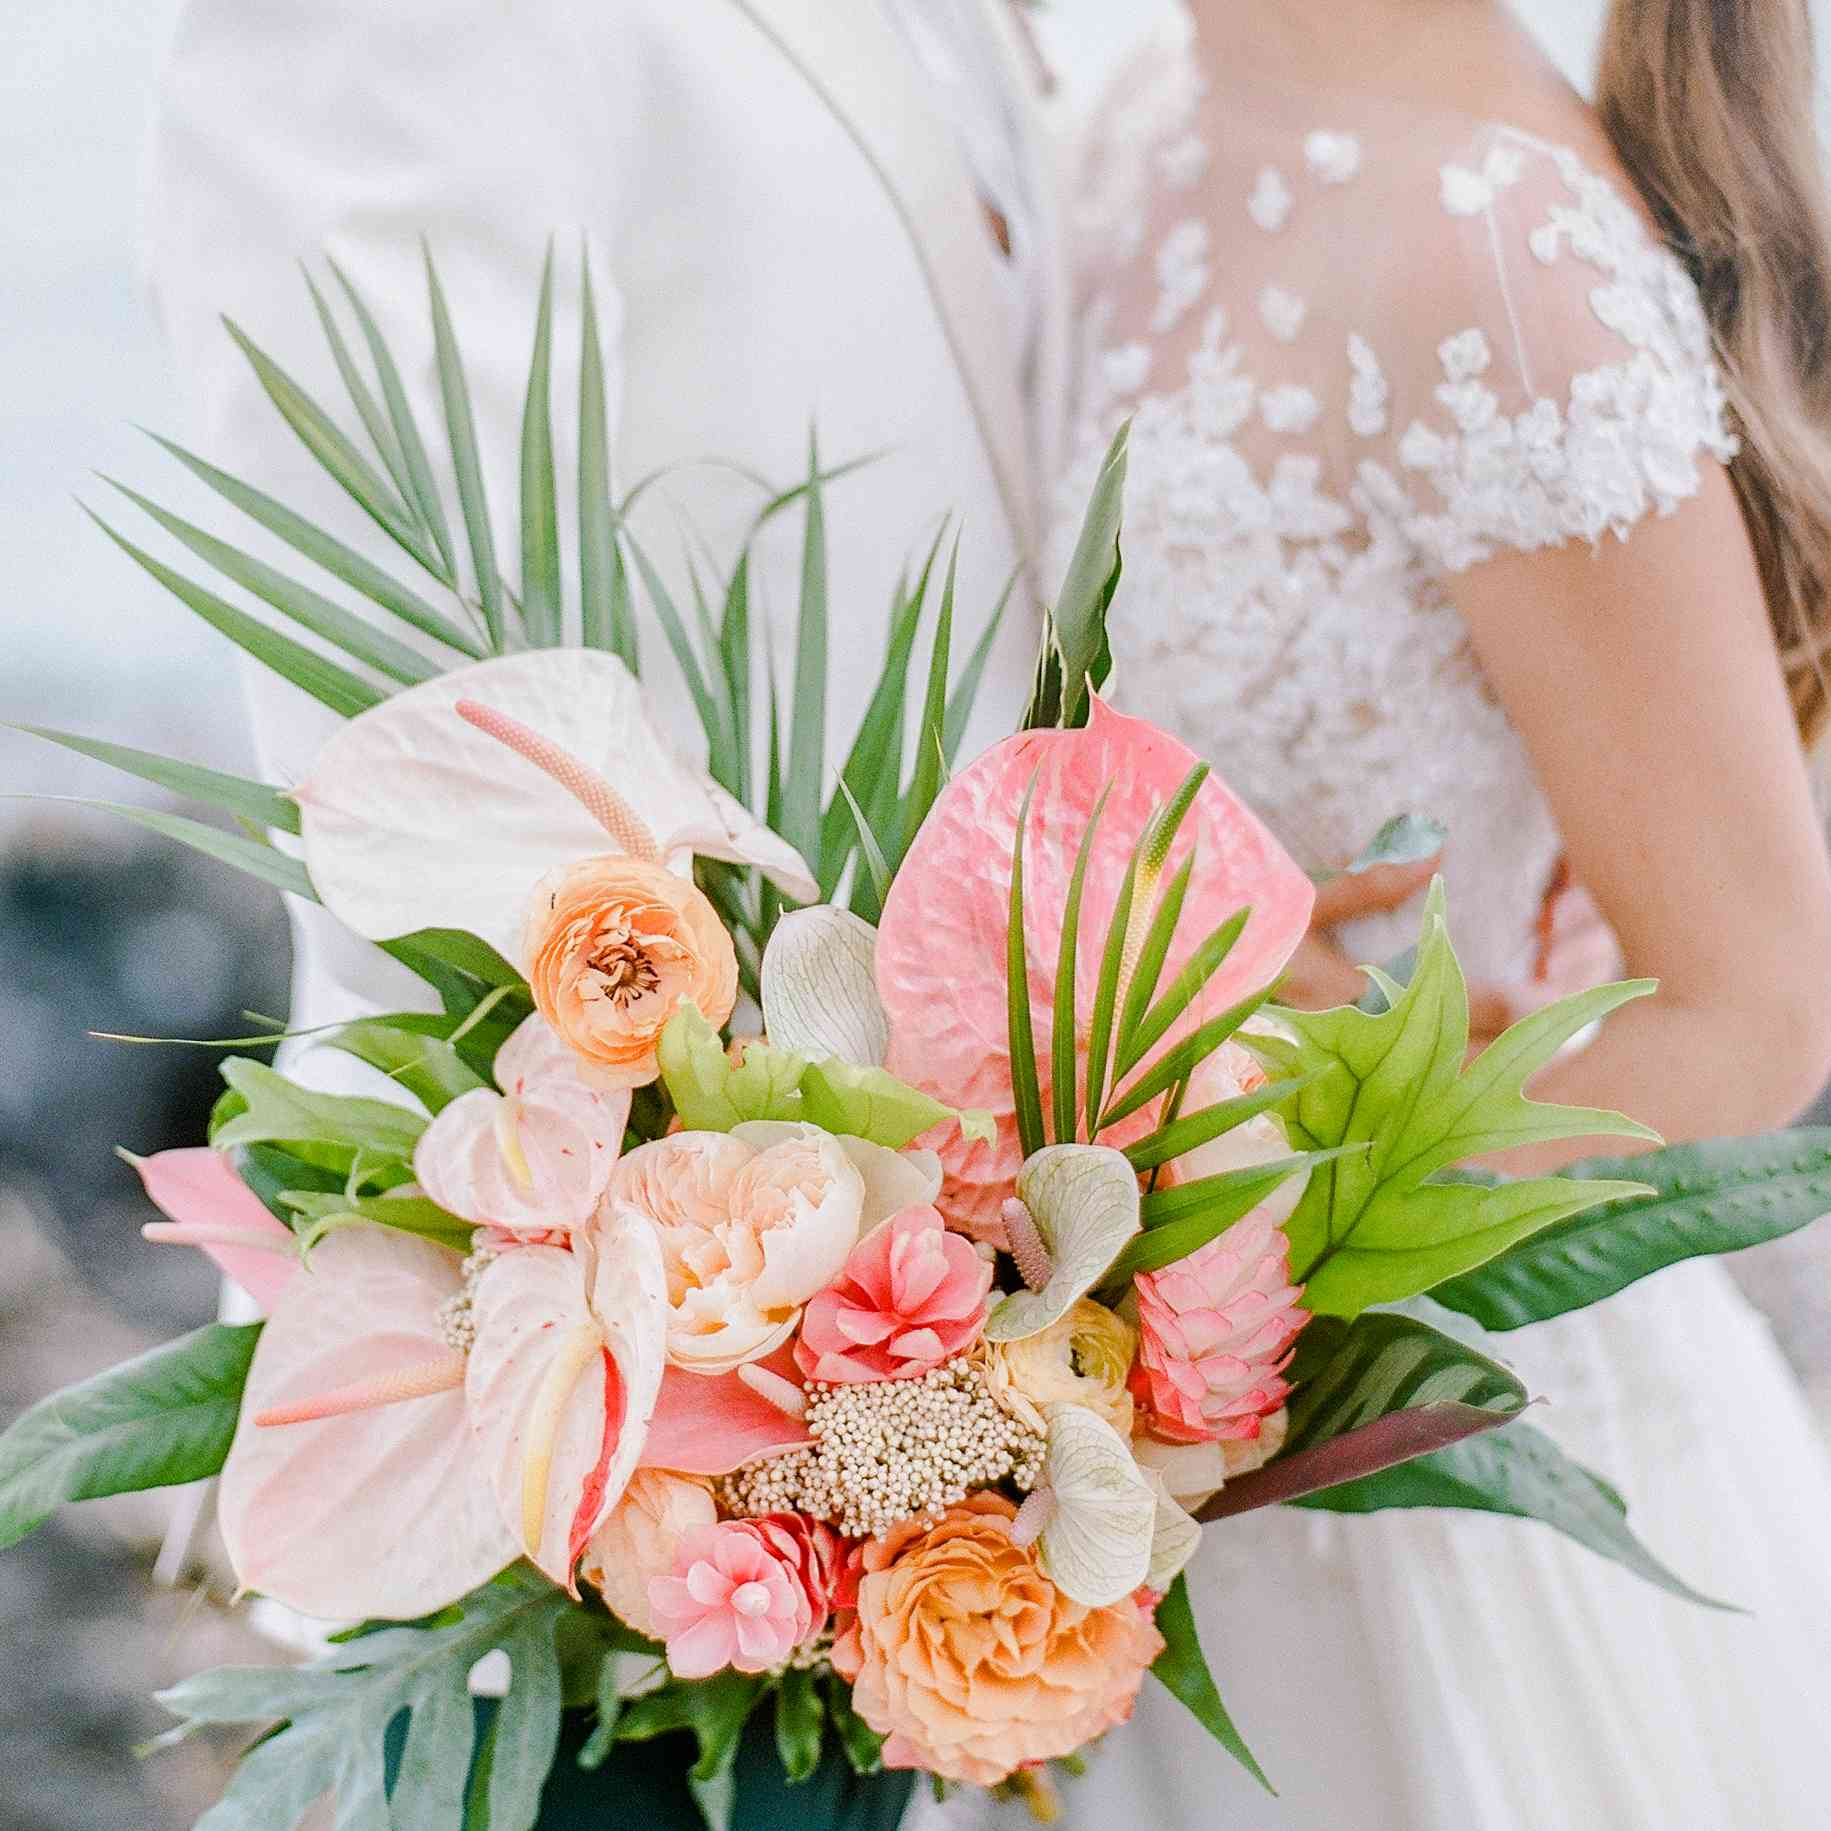 Bride and groom embracing, bride holding tropical flower bouquet